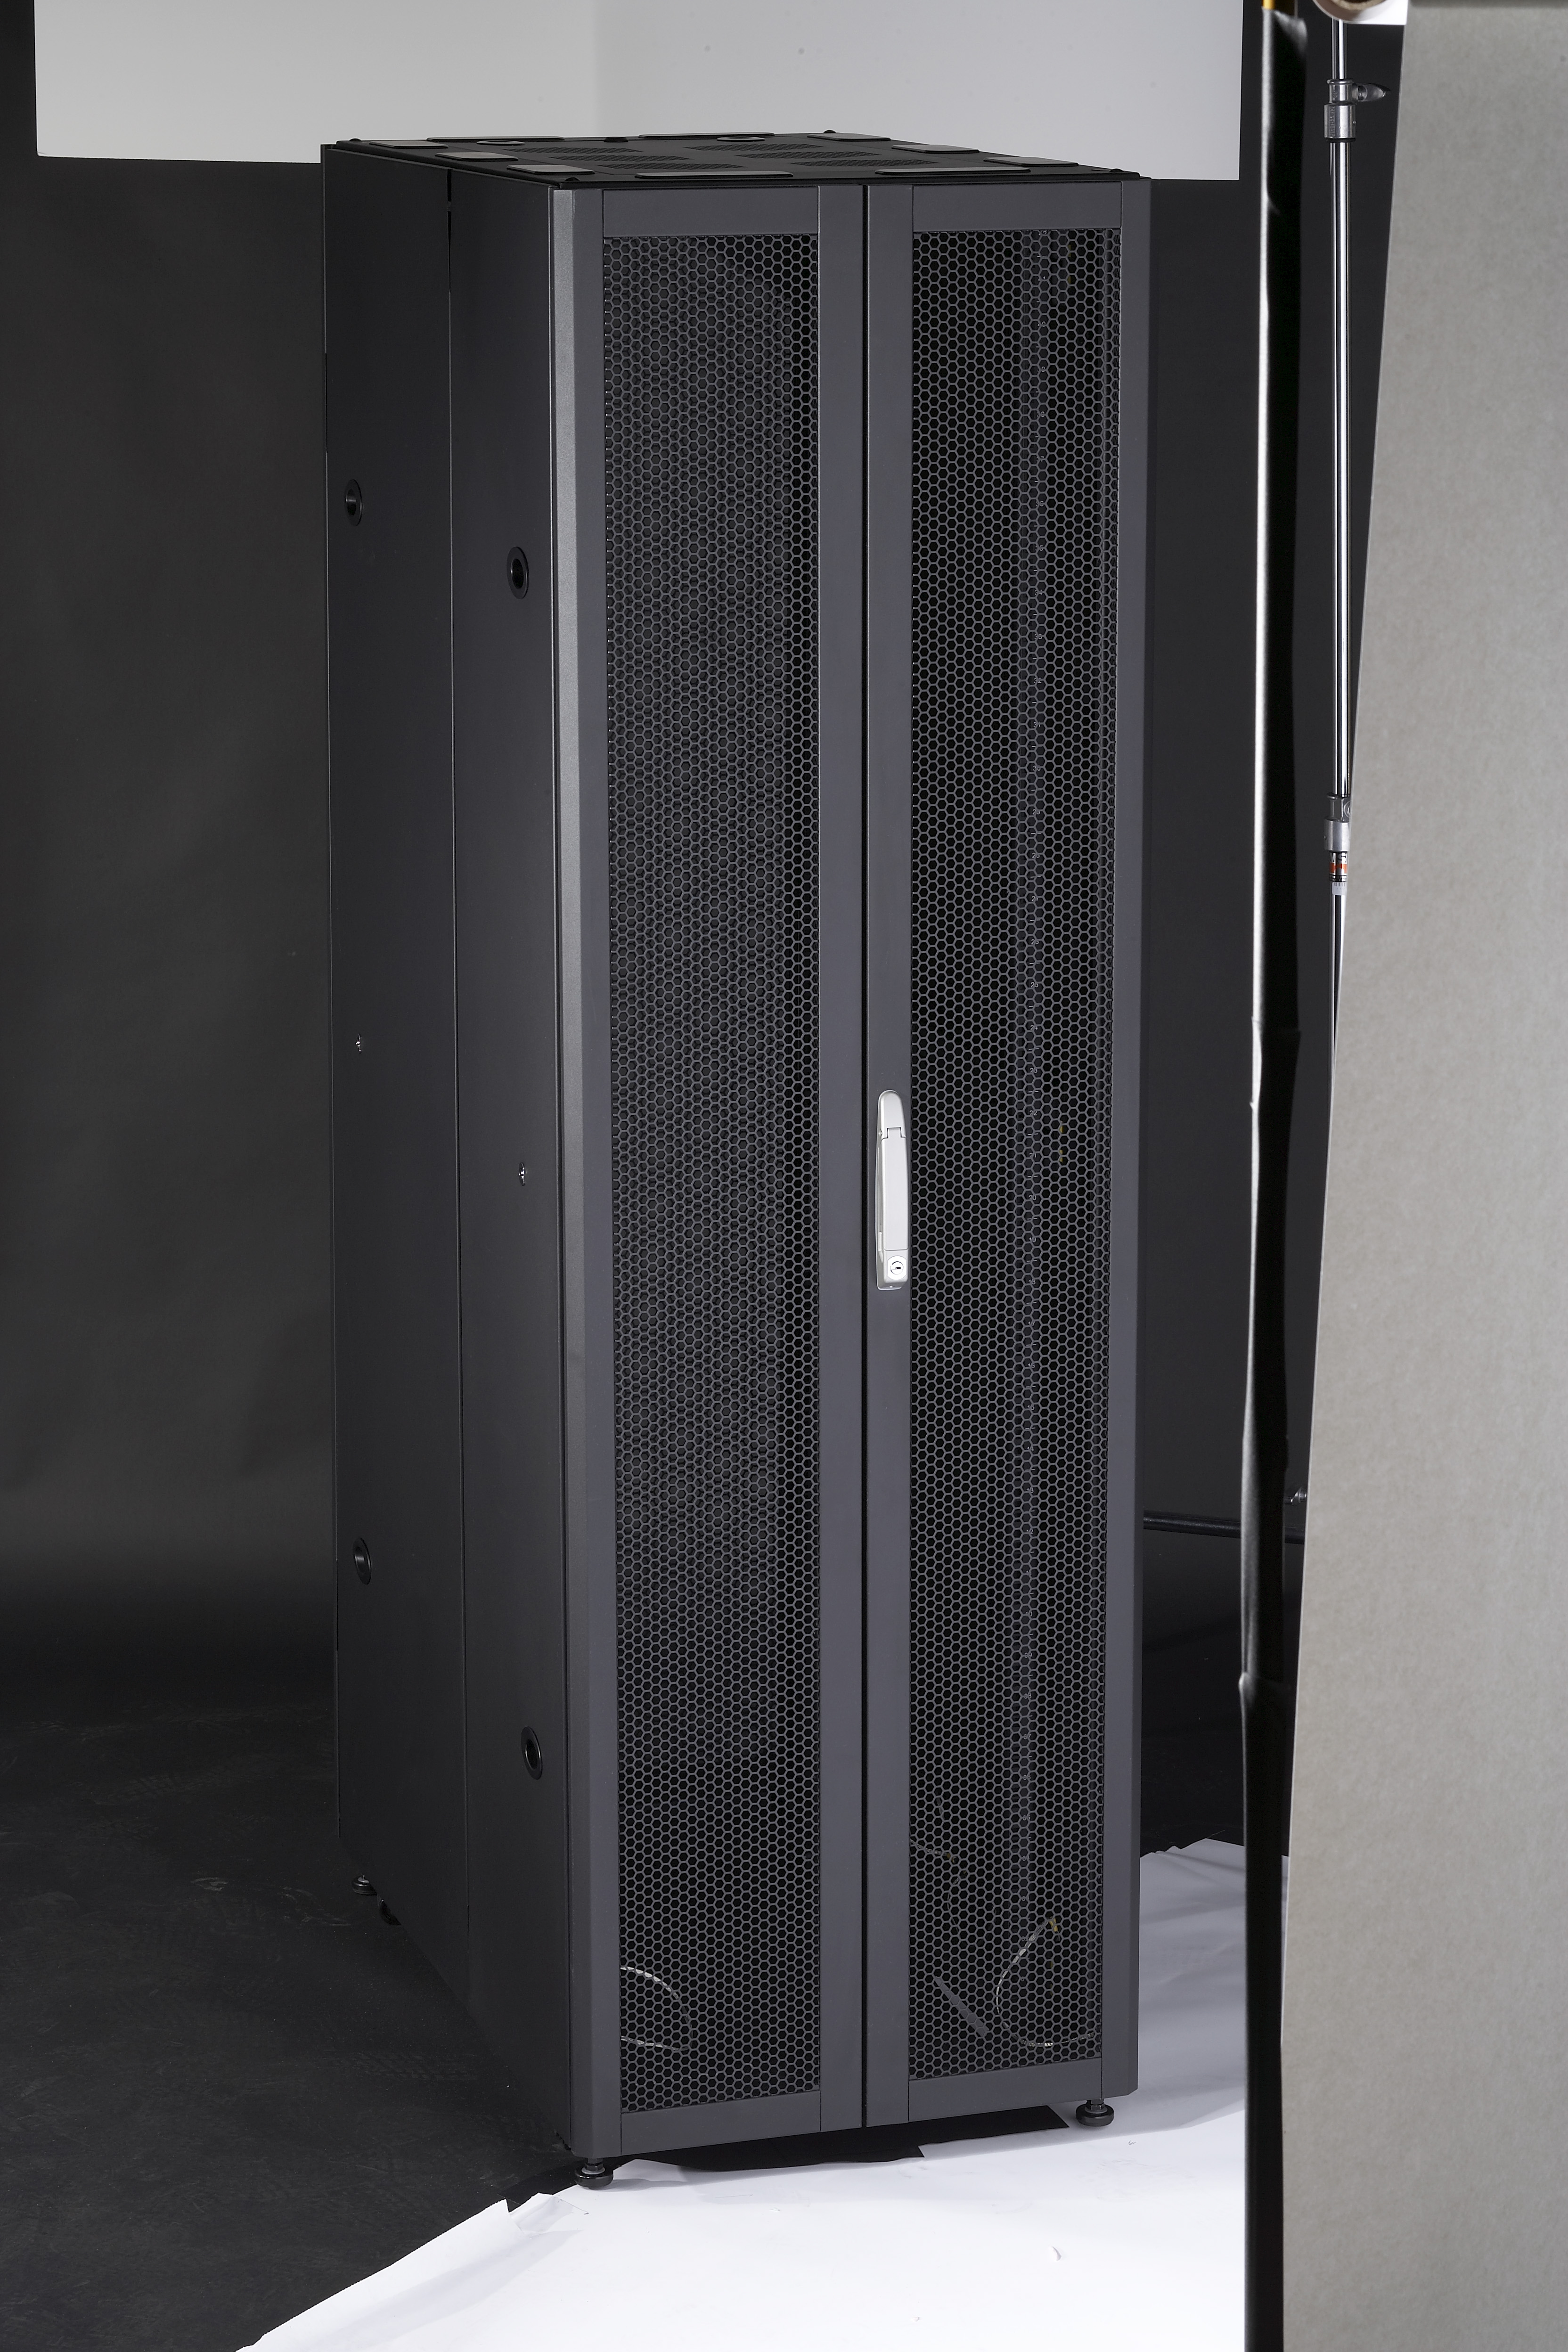 techsupportgore cabinet rack aaagghhhh remove wh qrpnzuc a comments server would r you this like why